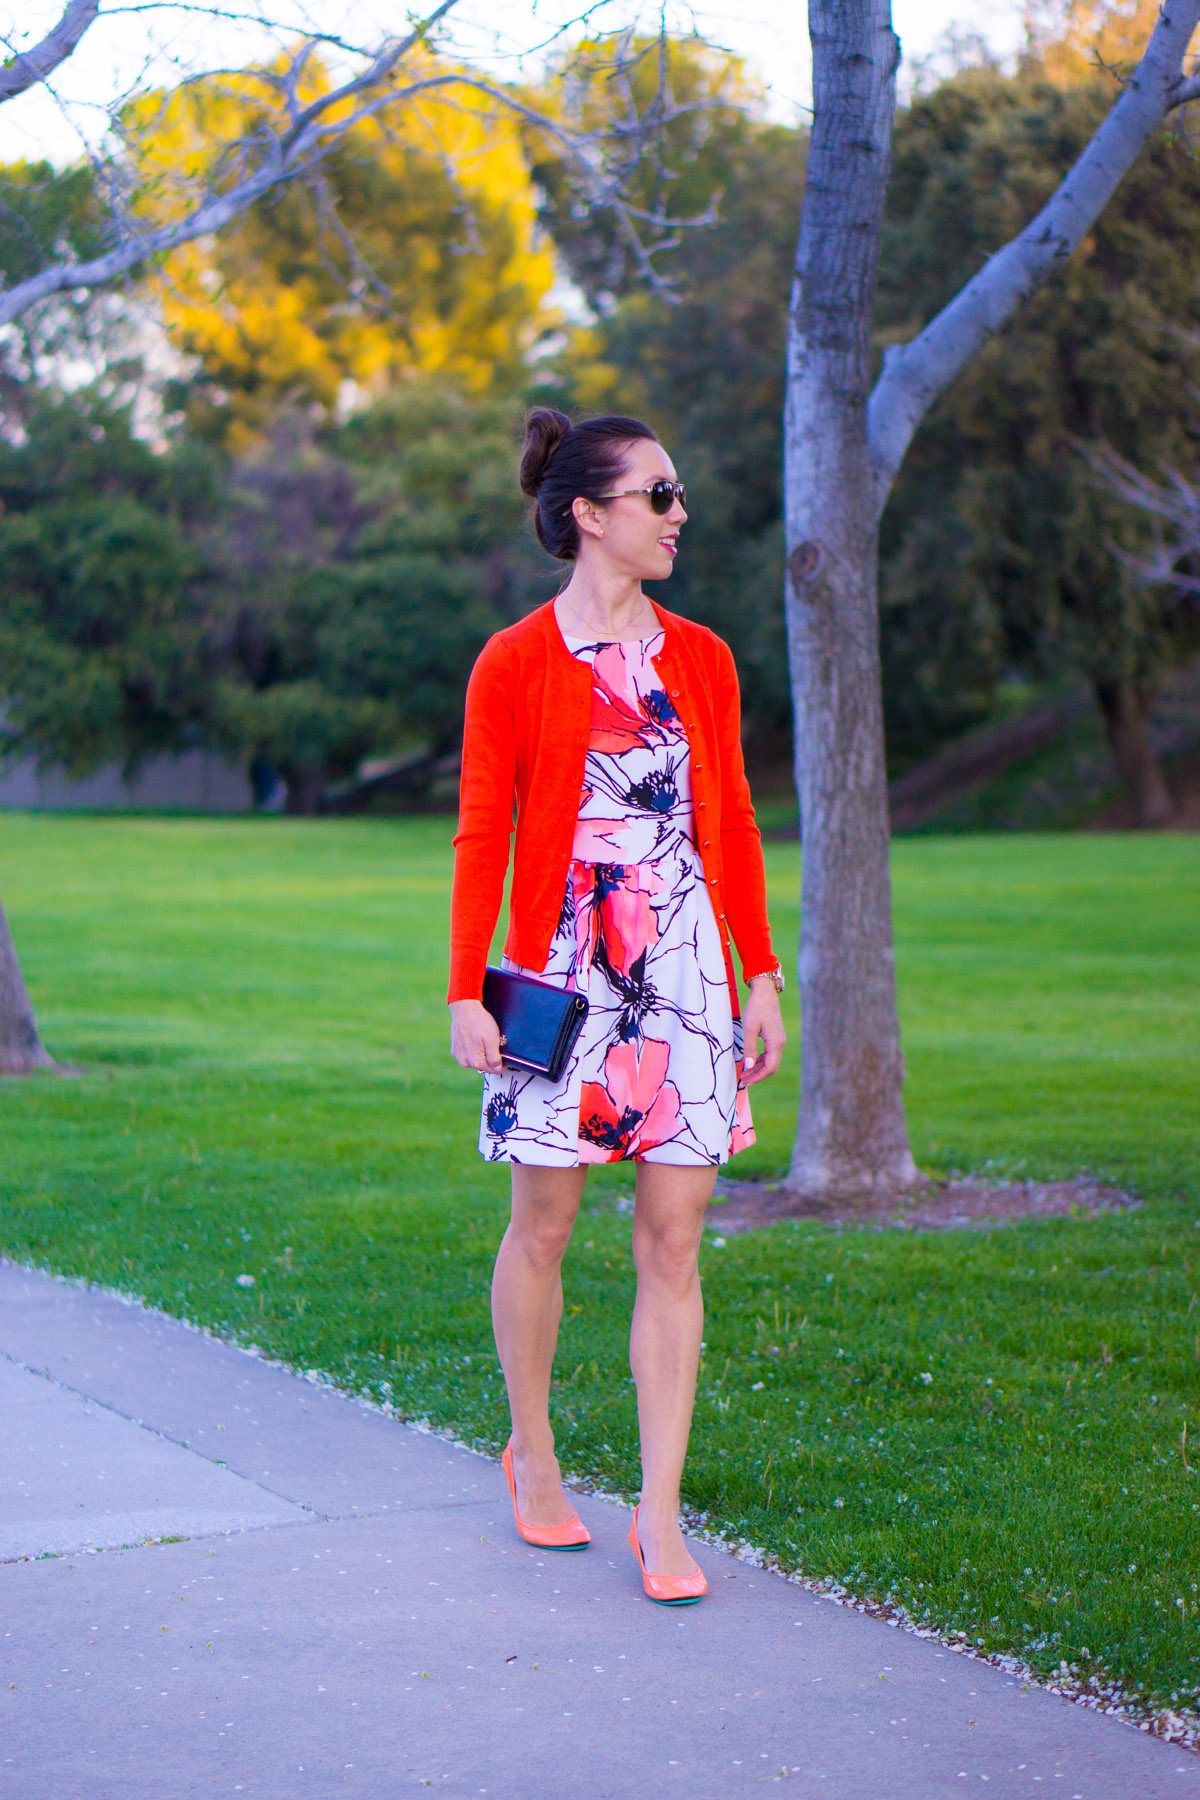 Best Floral Watercolor Dress: Bloomingdale's Aqua Brand Scuba Dress Review | Tieks by Gavrieli Coral Patent Ballet Flats | Target Lakitia Sandals | Banana Republic Factory Cardigan